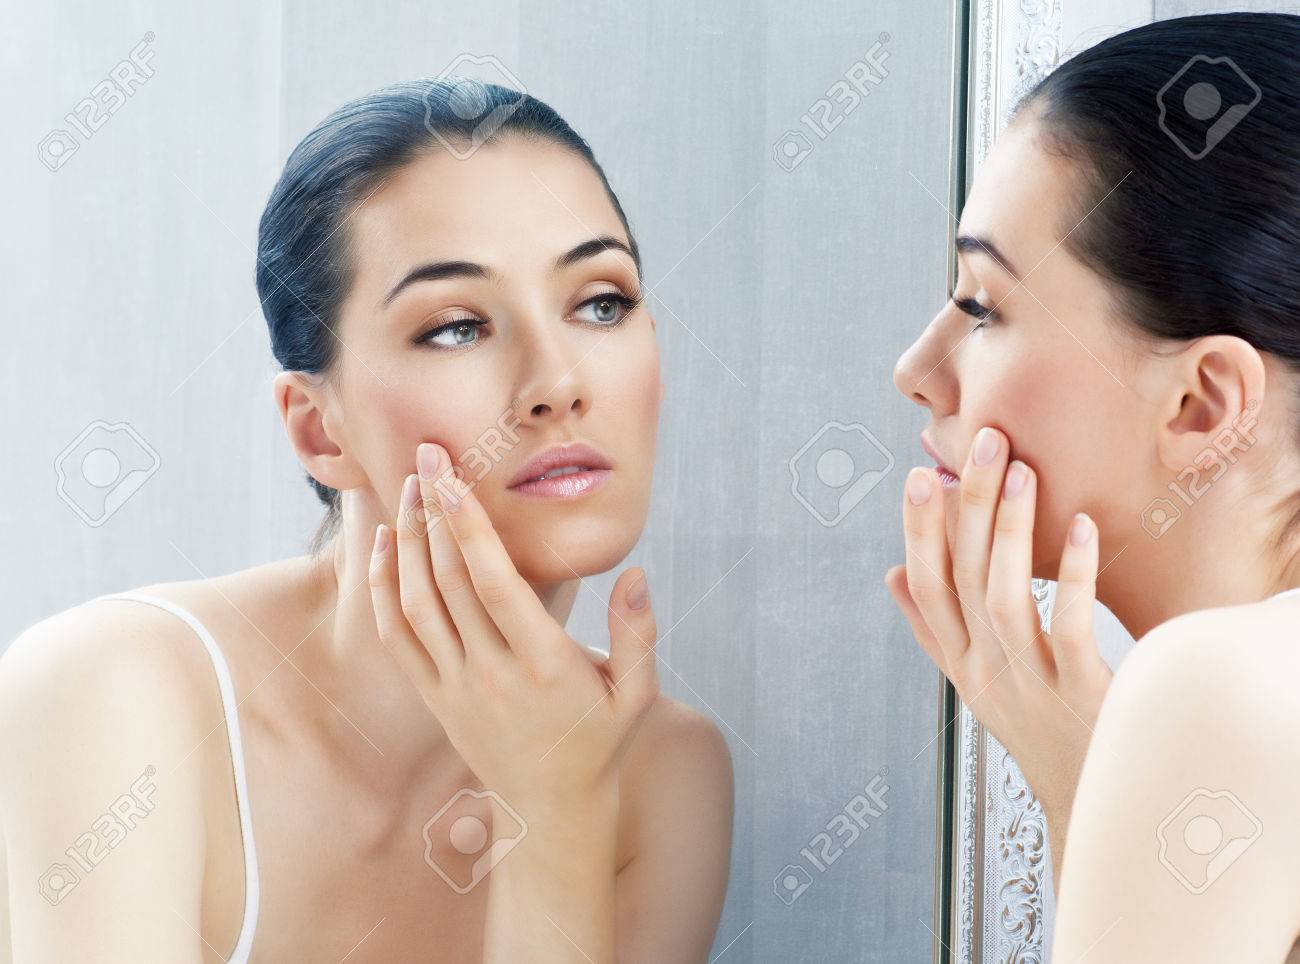 a beauty girl on the window background Stock Photo - 22935659